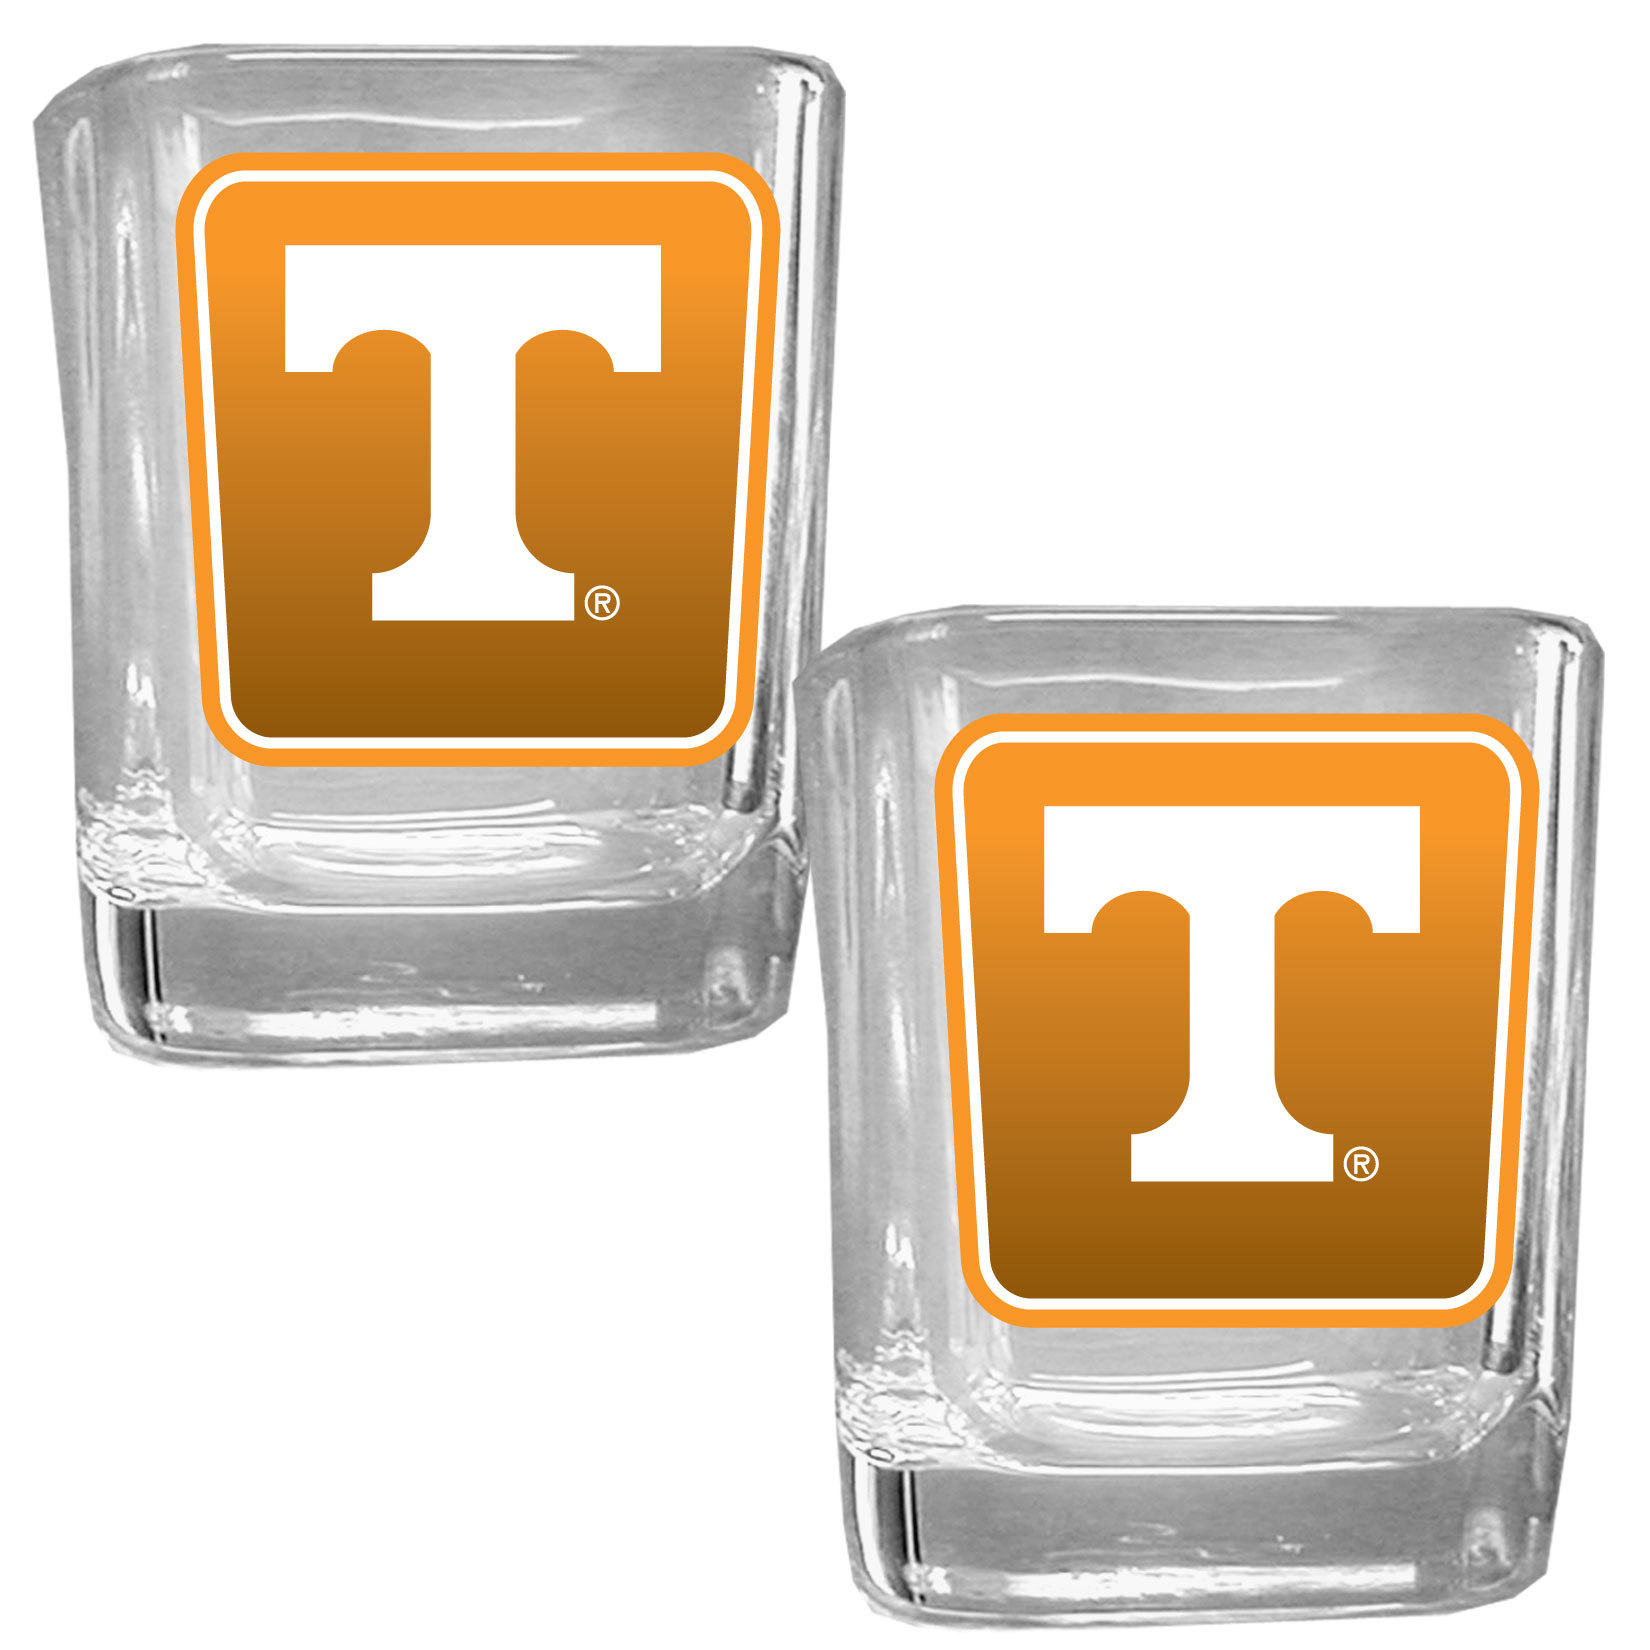 Tennessee Volunteers Square Glass Shot Glass Set - Our glass shot glasses are perfect for collectors or any game day event. The 2 ounce glasses feature bright, vidid digital Tennessee Volunteers graphics. Comes in a set of 2.